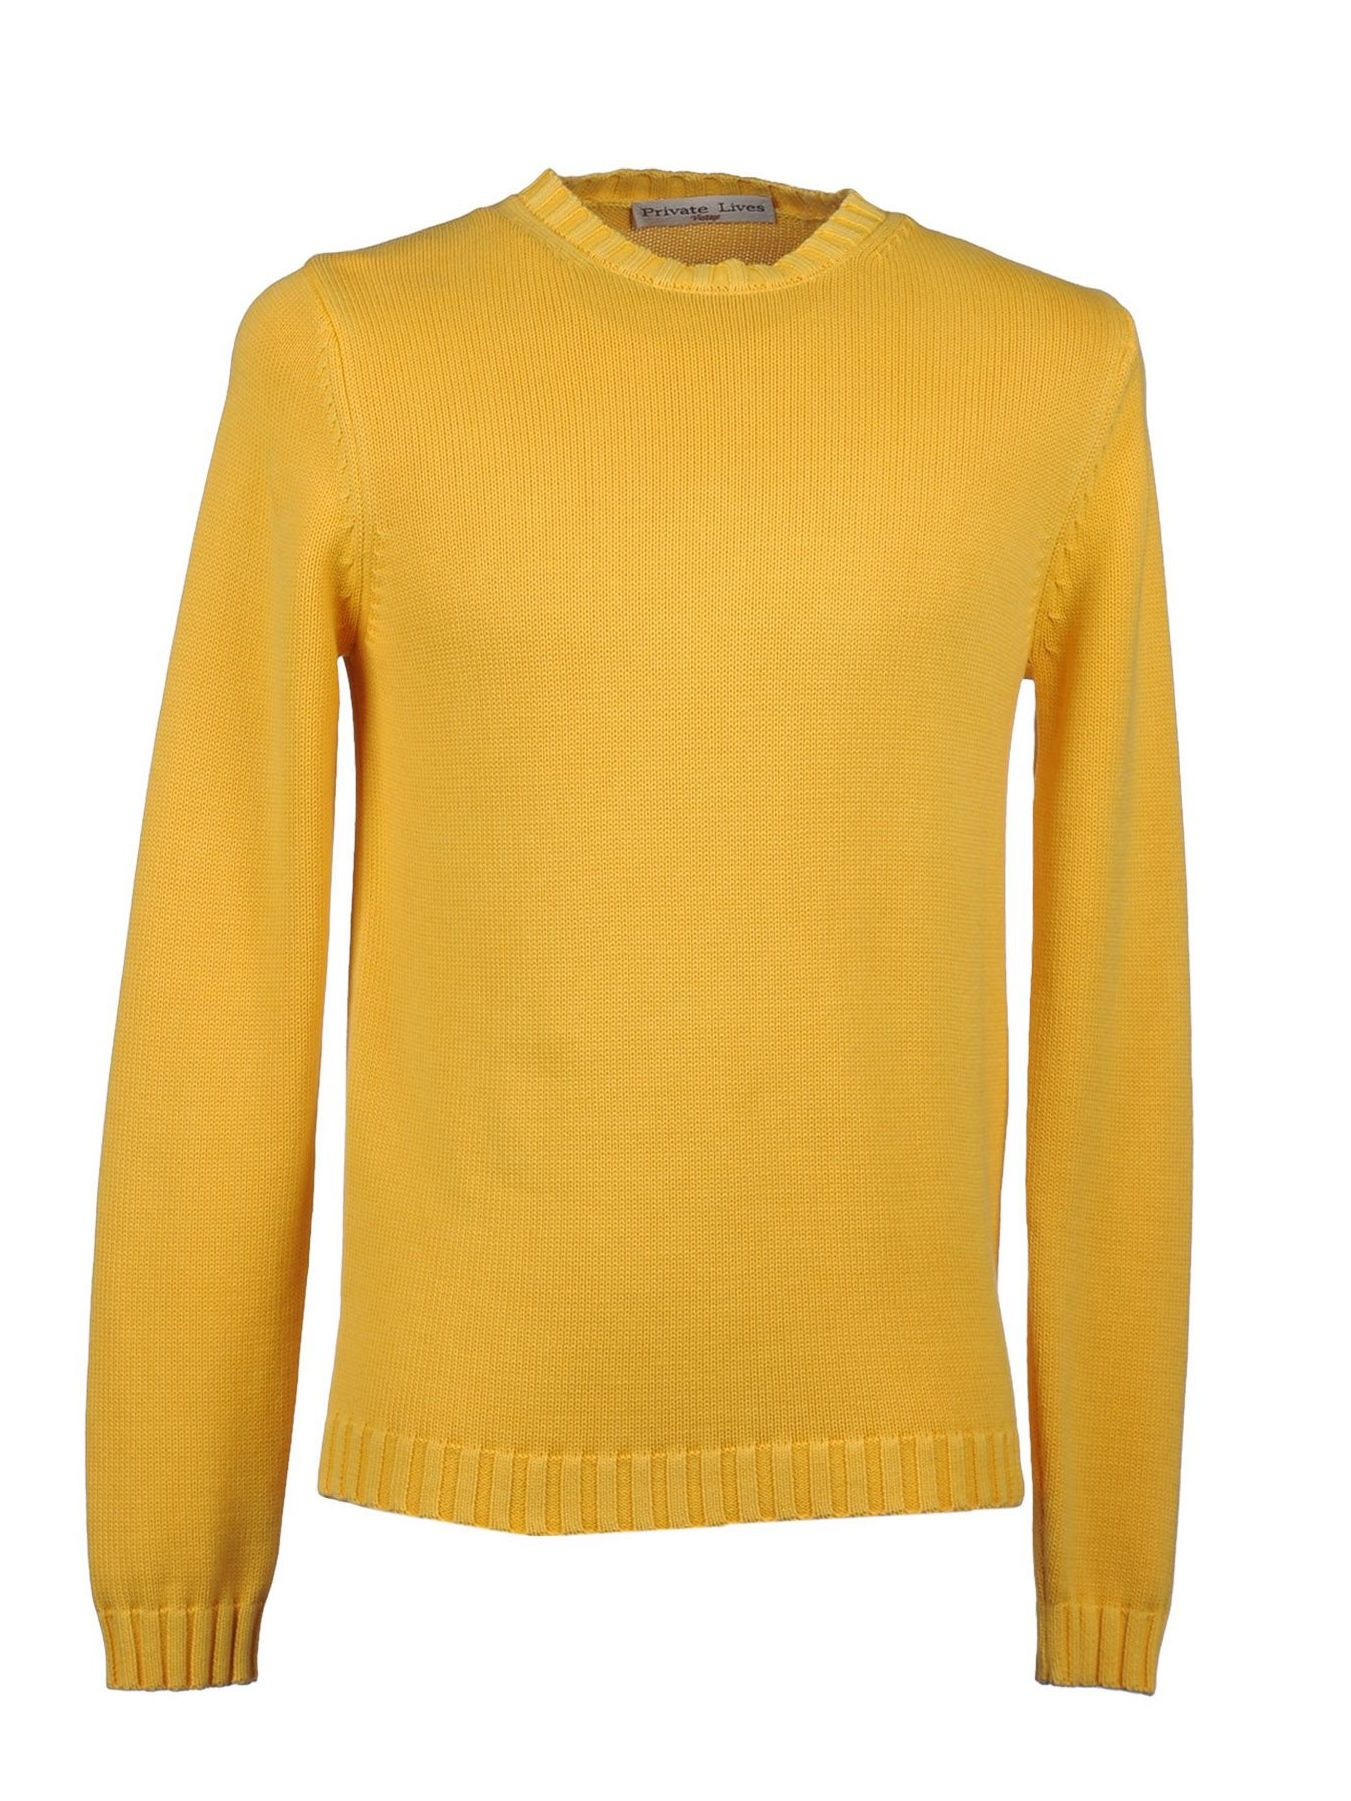 Private Lives Men Yellow Cotton Sweater Made in Italy | My Summer ...